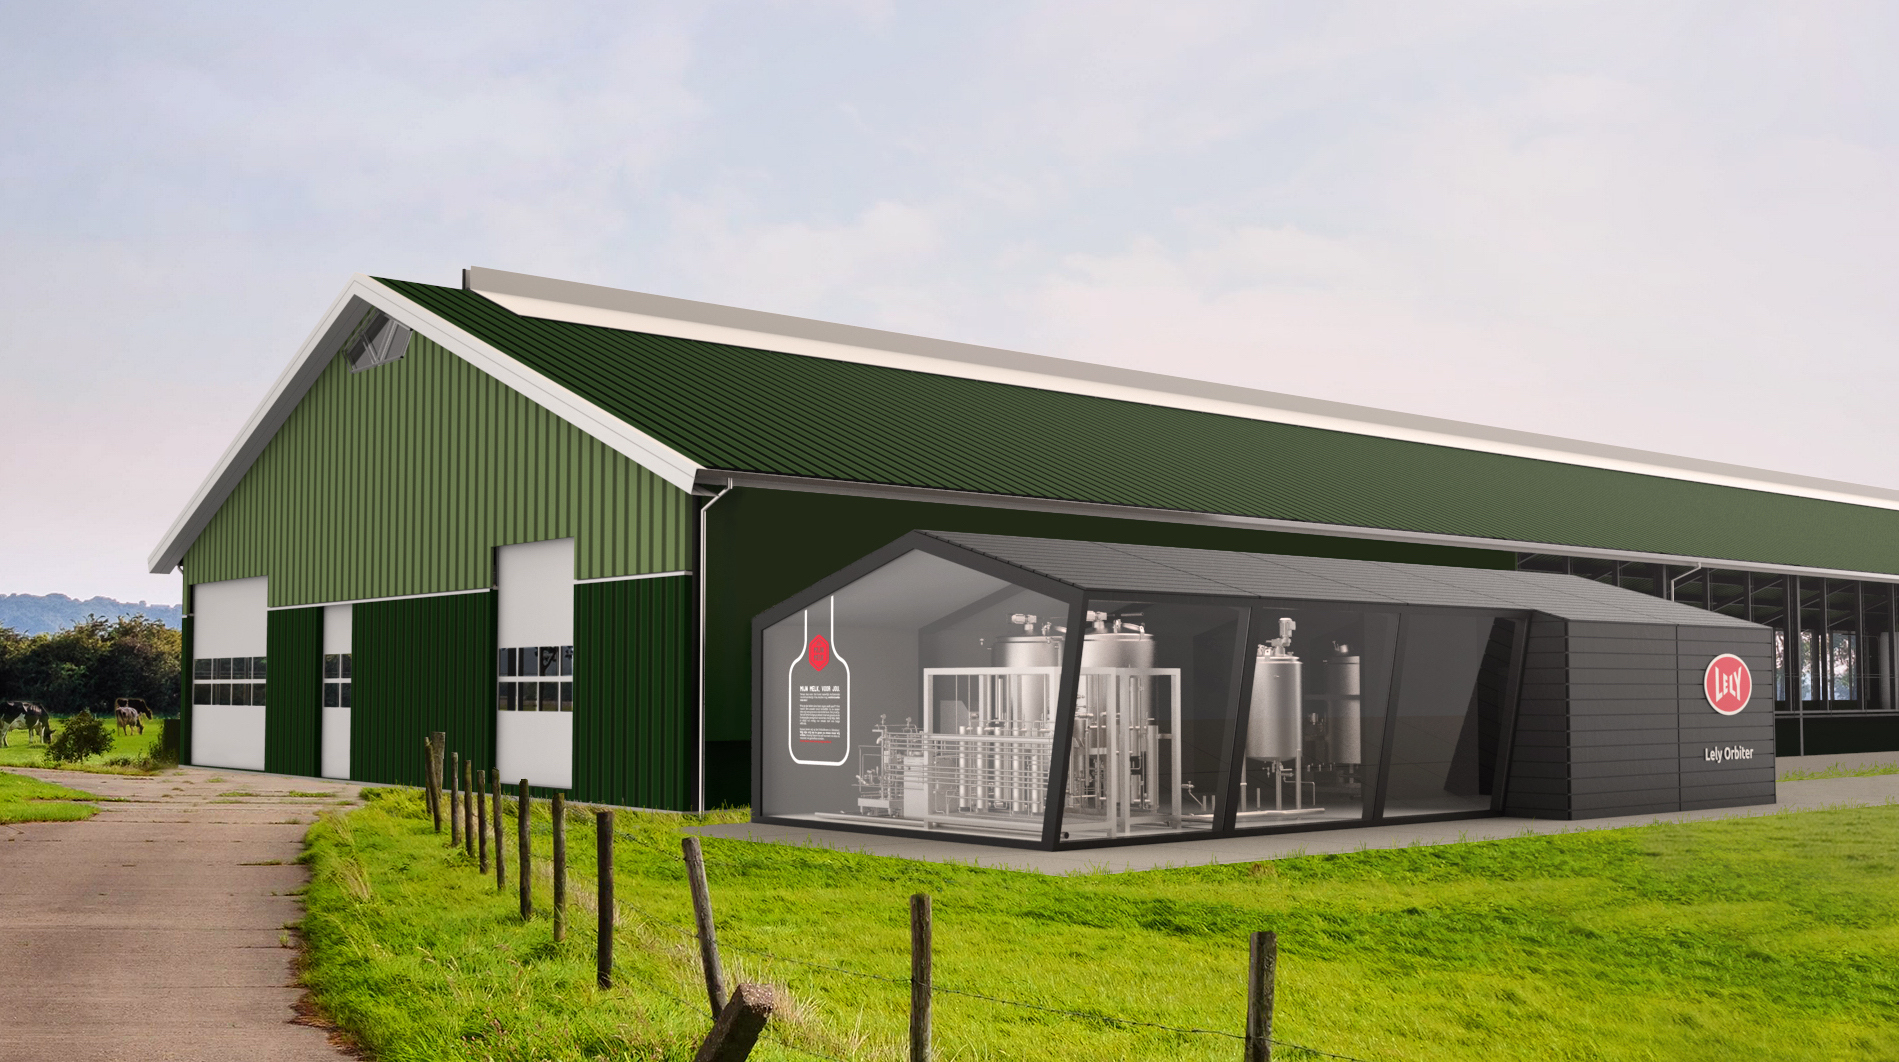 New Orbiter from Lely aims to future proof dairy businesses